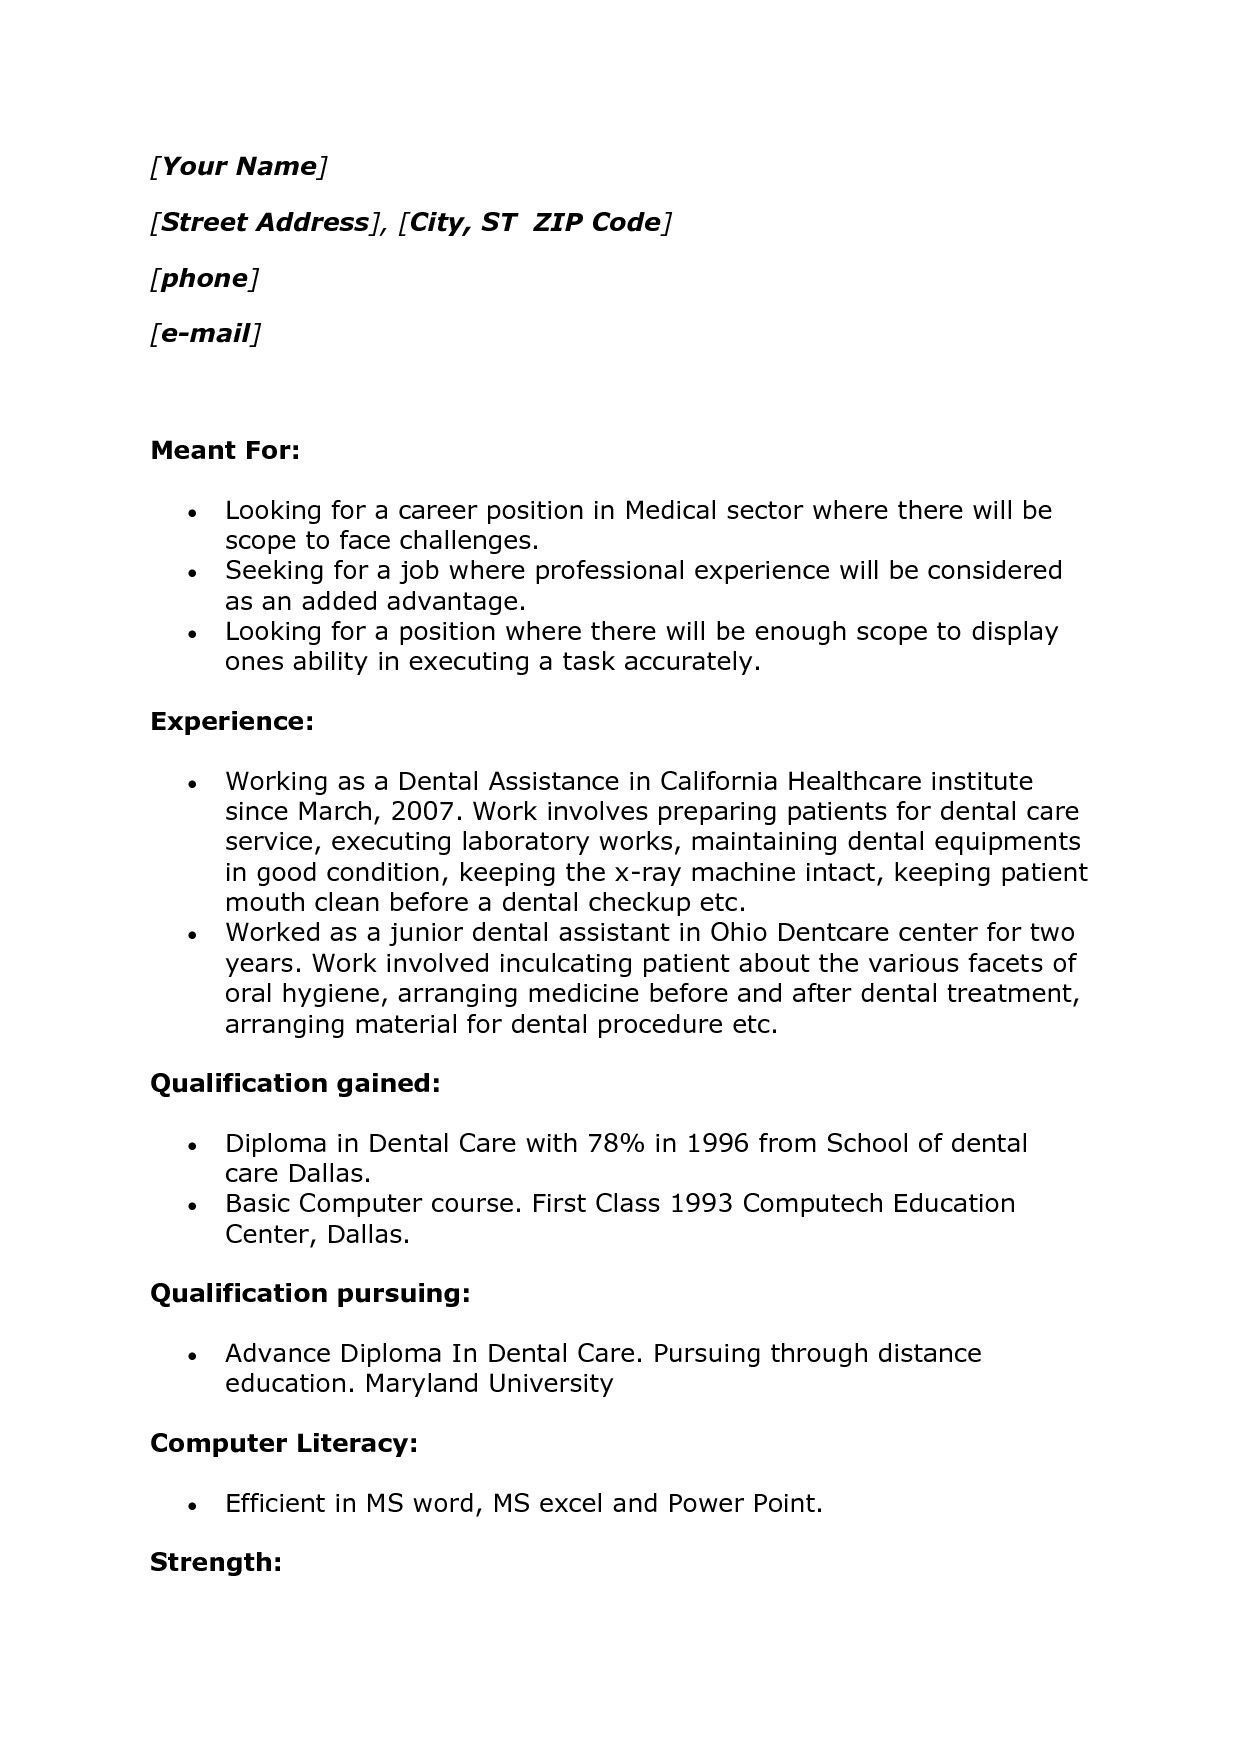 Dental assistant Job Description for Resume Unusual Simple